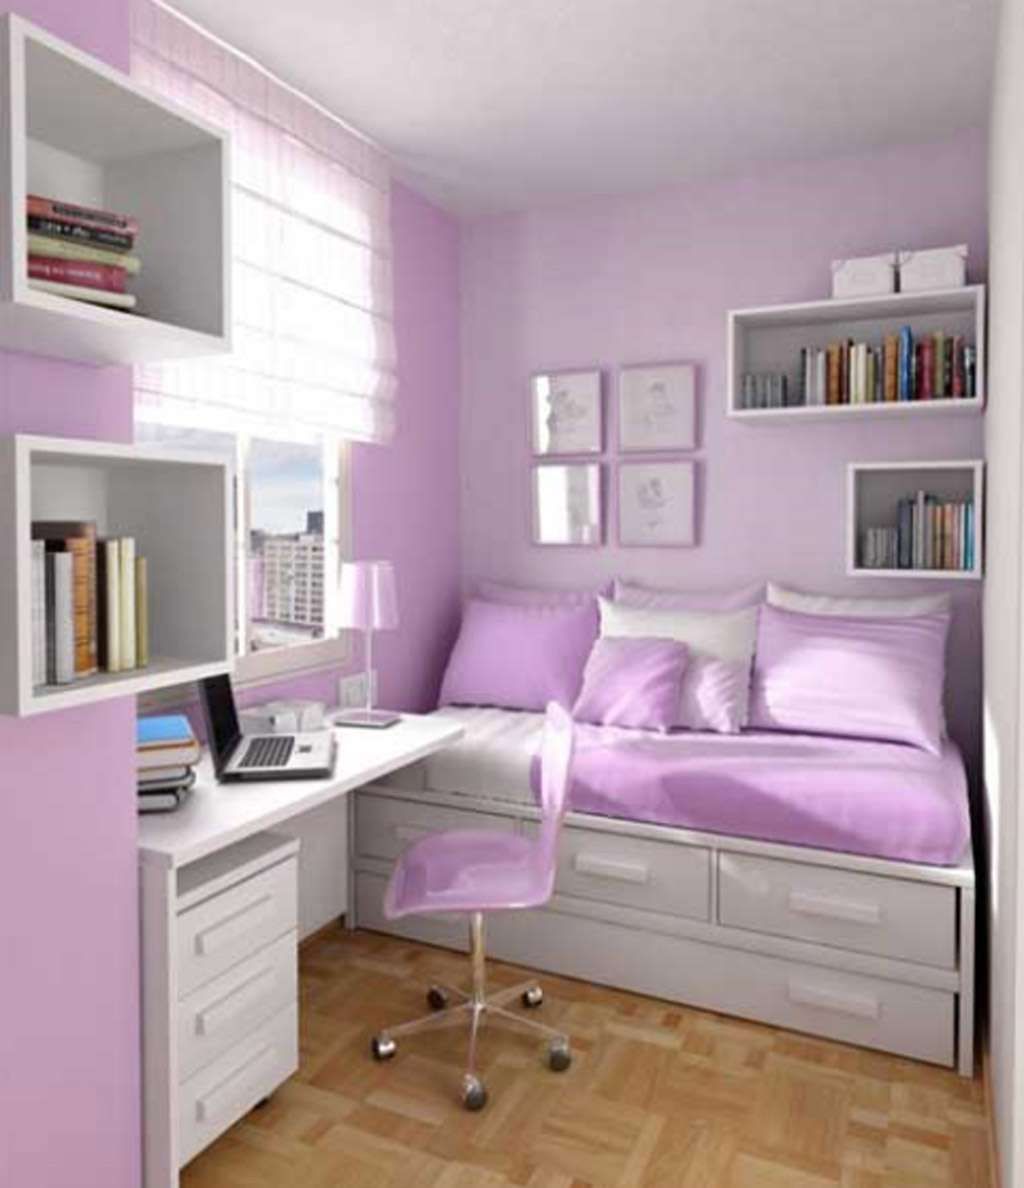 Bedrooms for girls purple and white - Amazing Bedrooms For Teenage Girls White And Light Purple Color For Girl S Bedroom